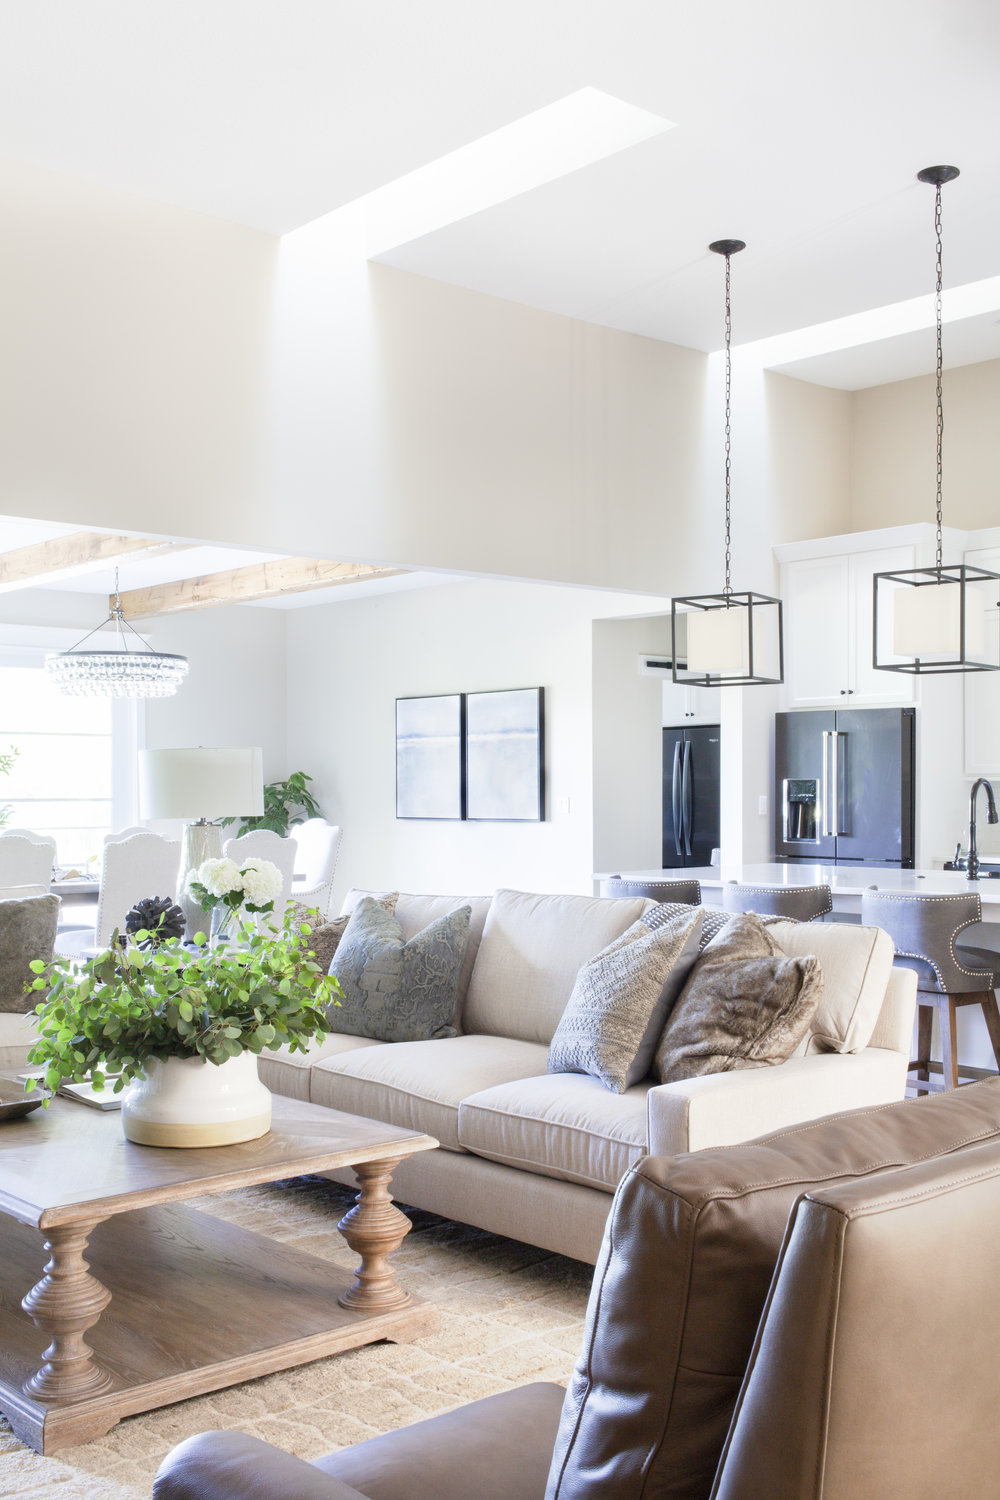 before-and-after-home-reveal-scout-and-nimble-lake-view-luxe-country-interior-design-open-floor-plan-sky-light-living-room-104.jpg